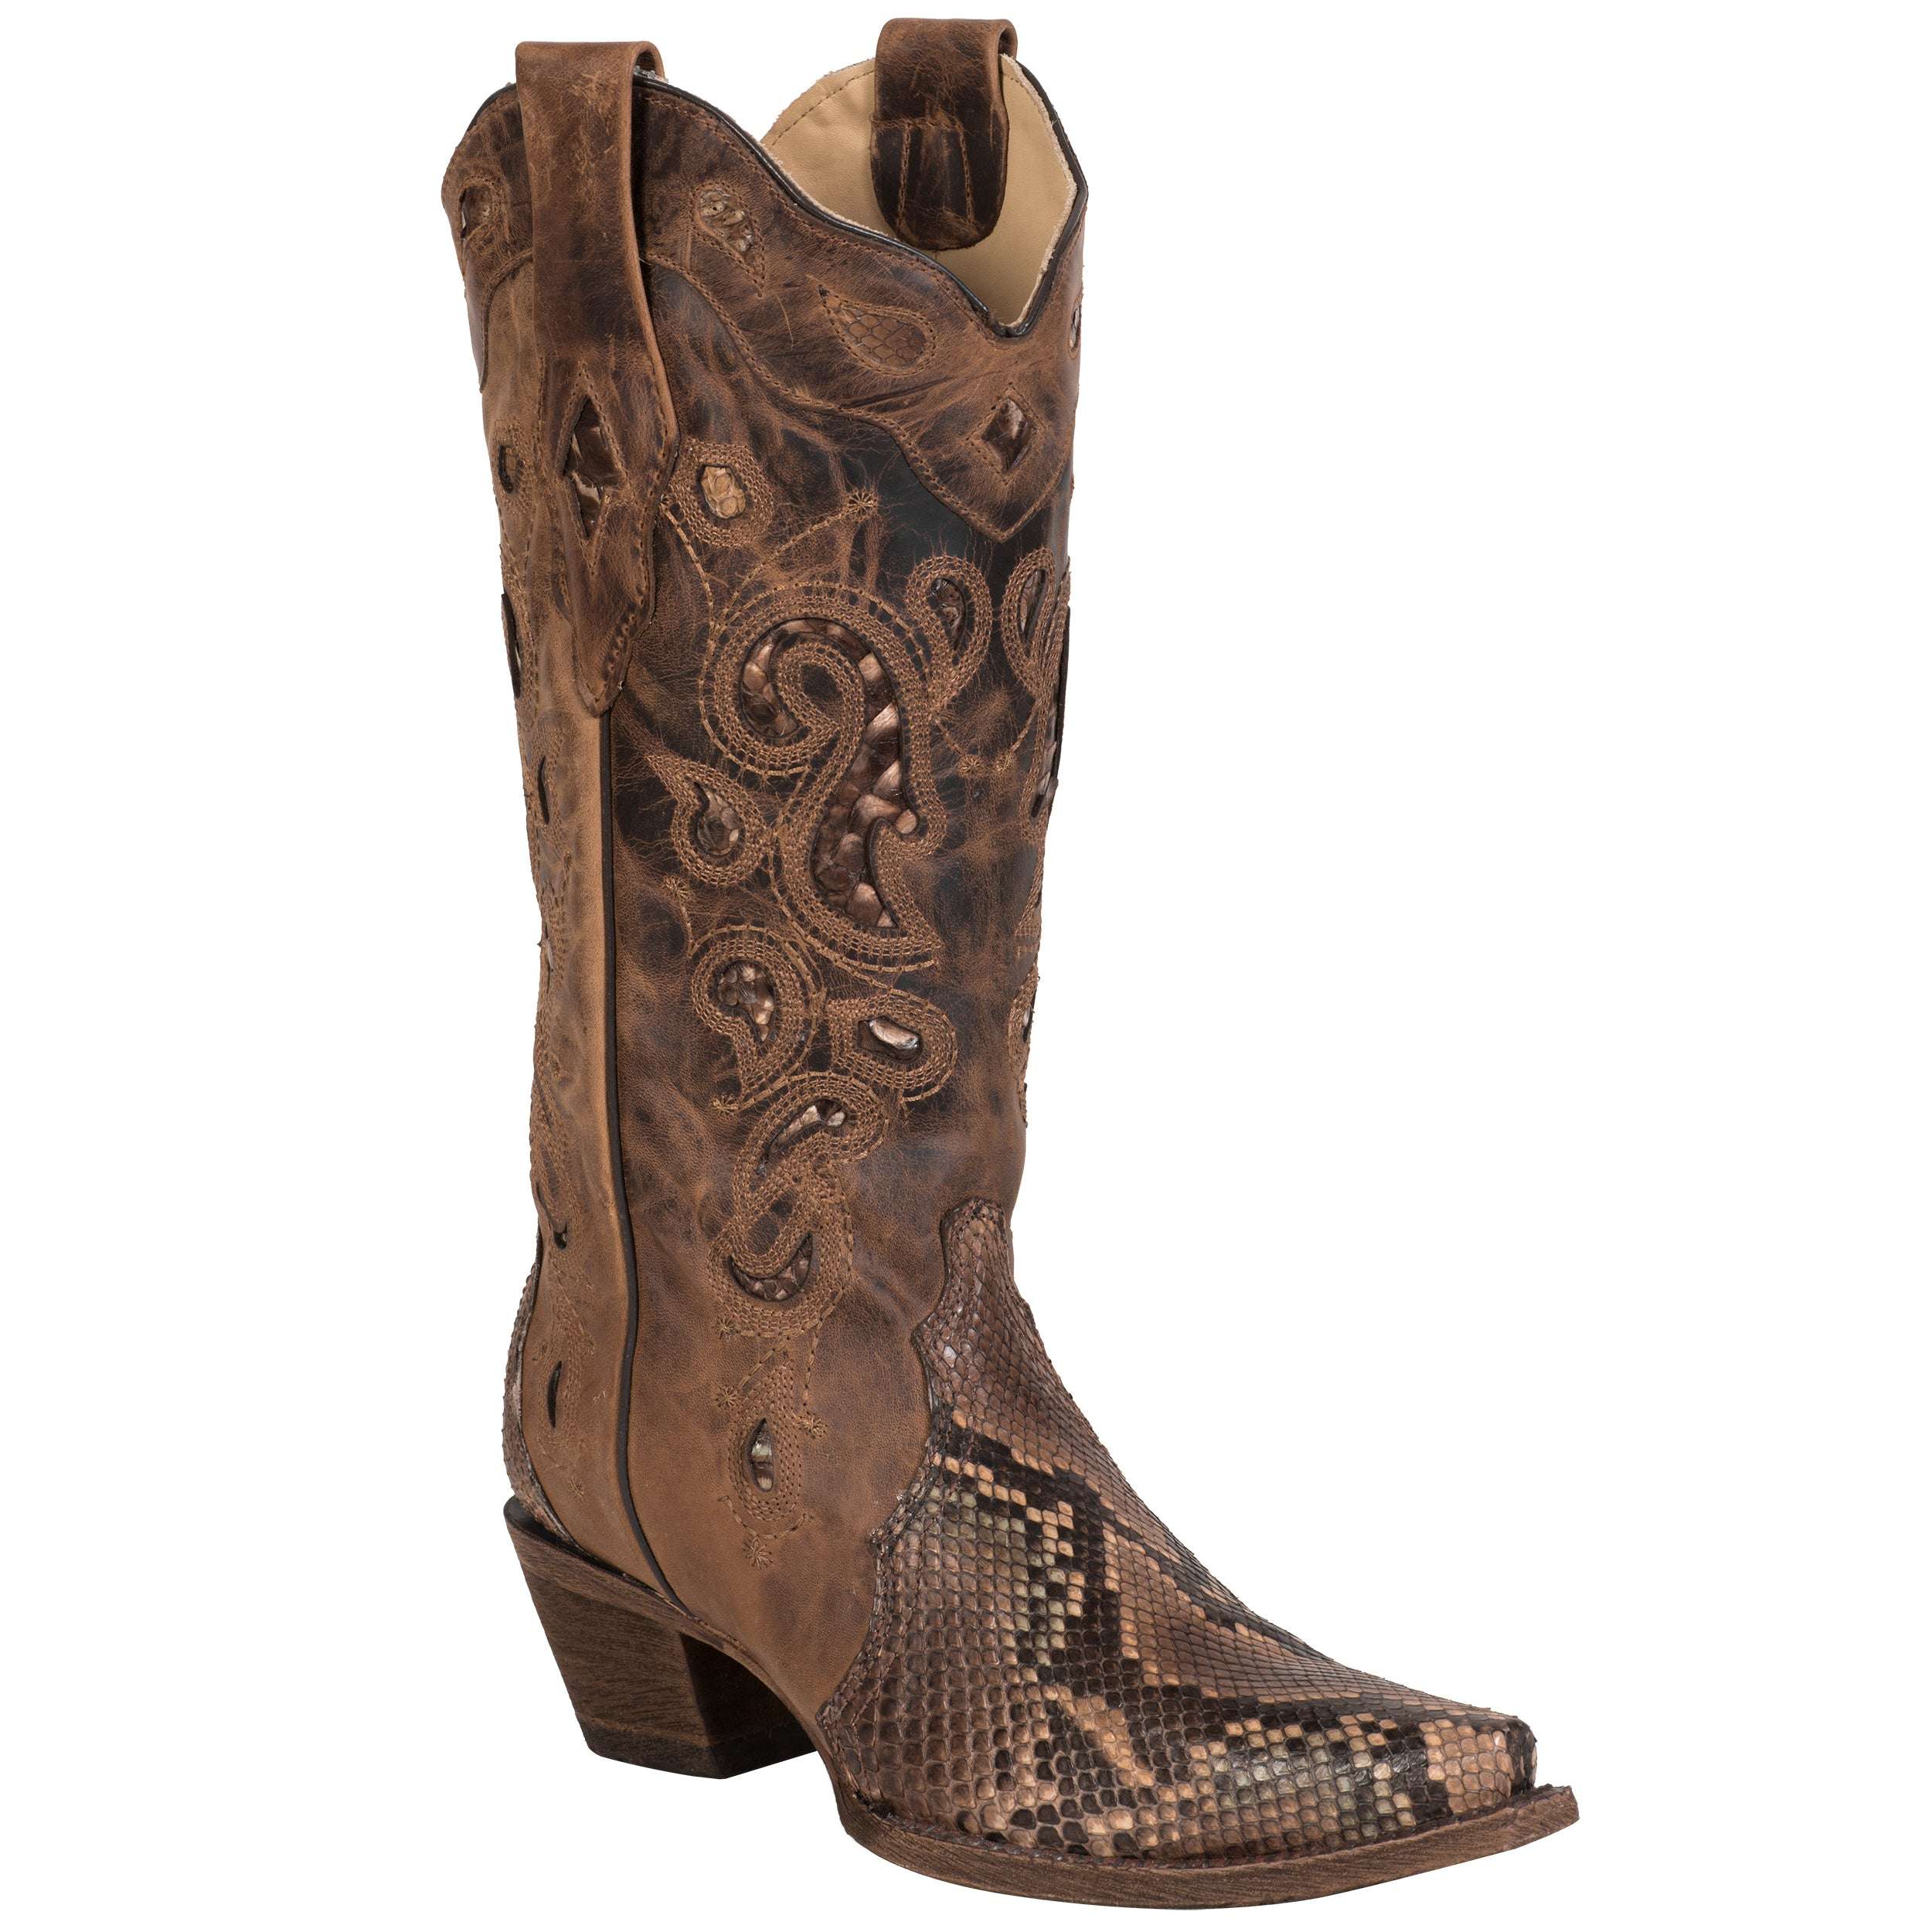 c905deddbf6 Corral Boots Womens Leather Python Inlay Brown Cowgirl – The Western ...